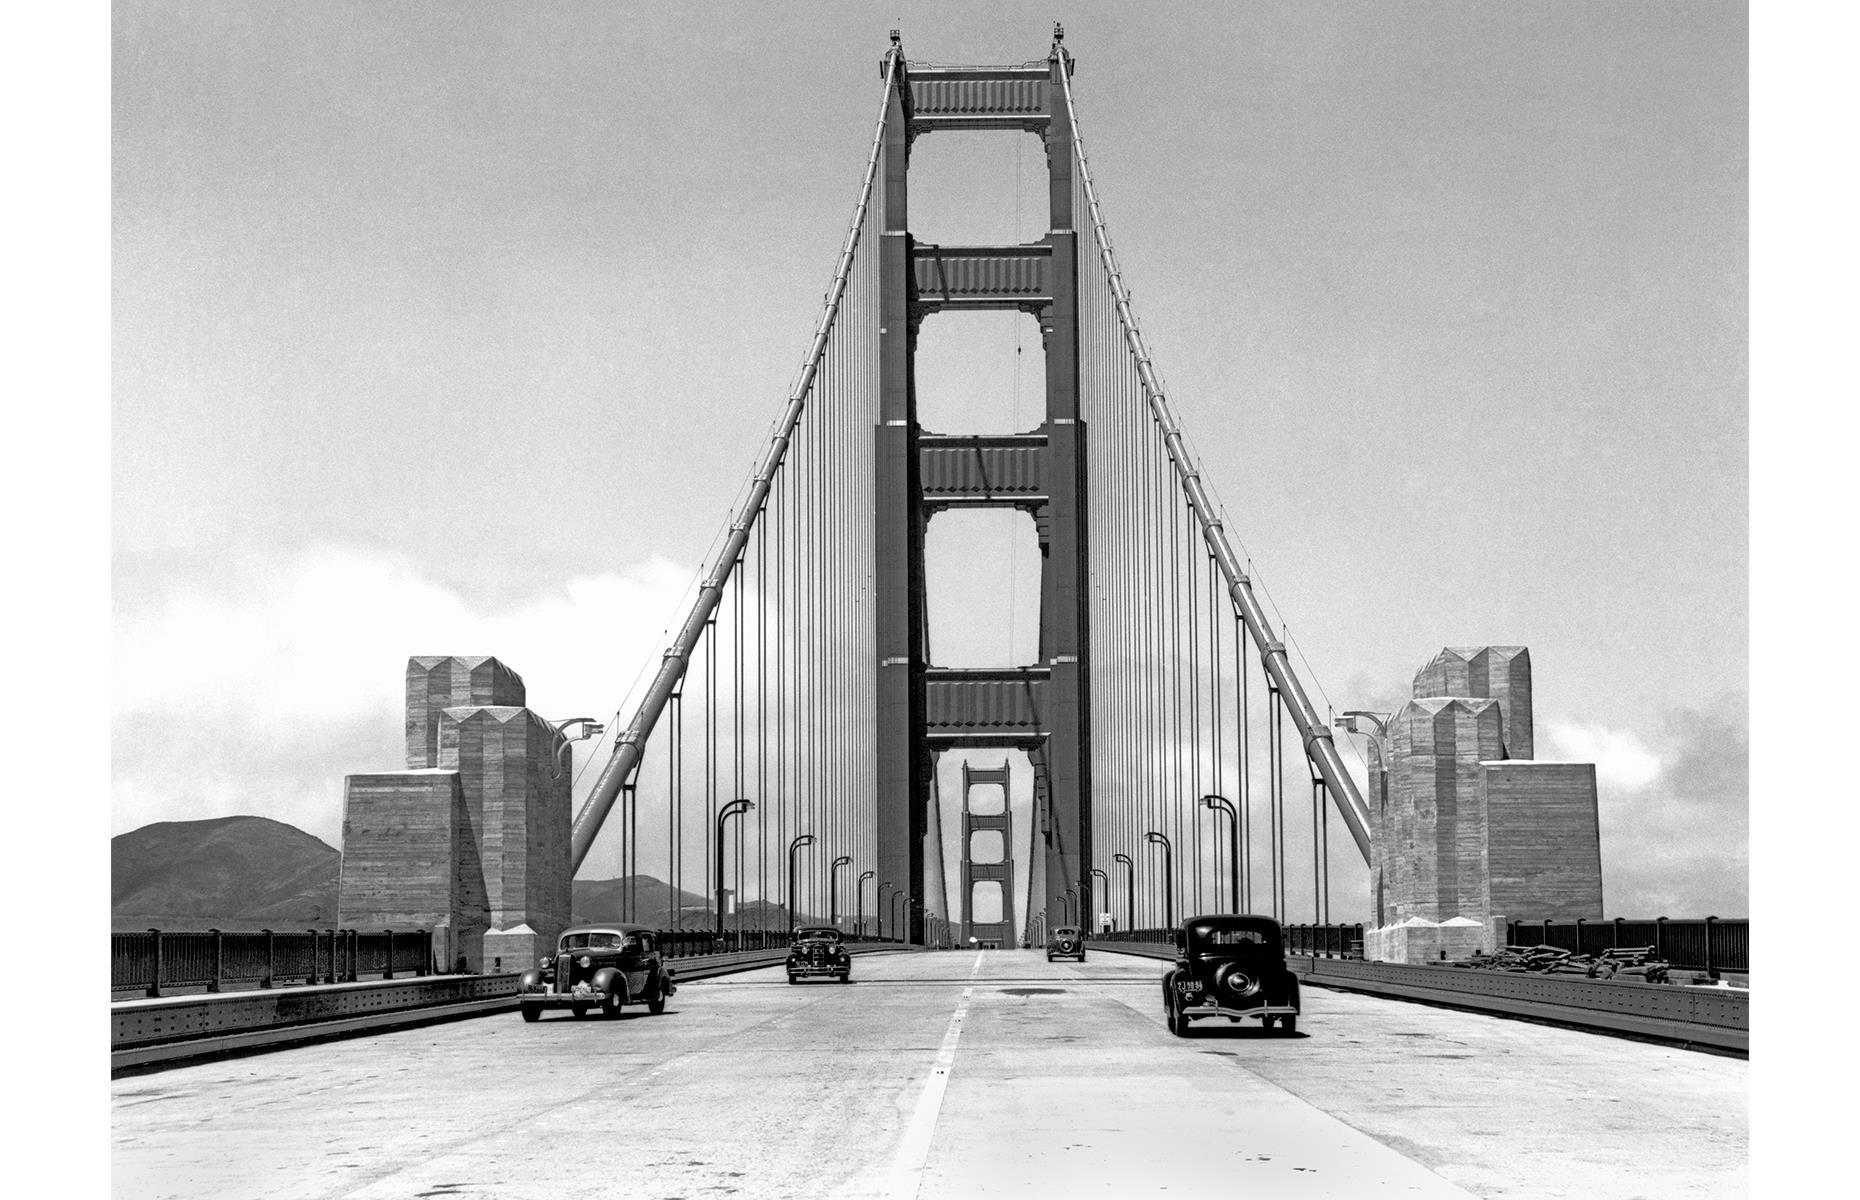 Slide 27 of 51: The red-orange Golden Gate Bridge has spanned its namesake strait since 1937, and at the time it was the longest and tallest suspension bridge in the world. Pictured here on 24 May 1937, a few days before its official opening date, a small number of journalists were allowed to cross the bridge. Today, the bridge is typically crossed by 100,000 vehicles per day. These are the most impressive bridges in every state and DC.